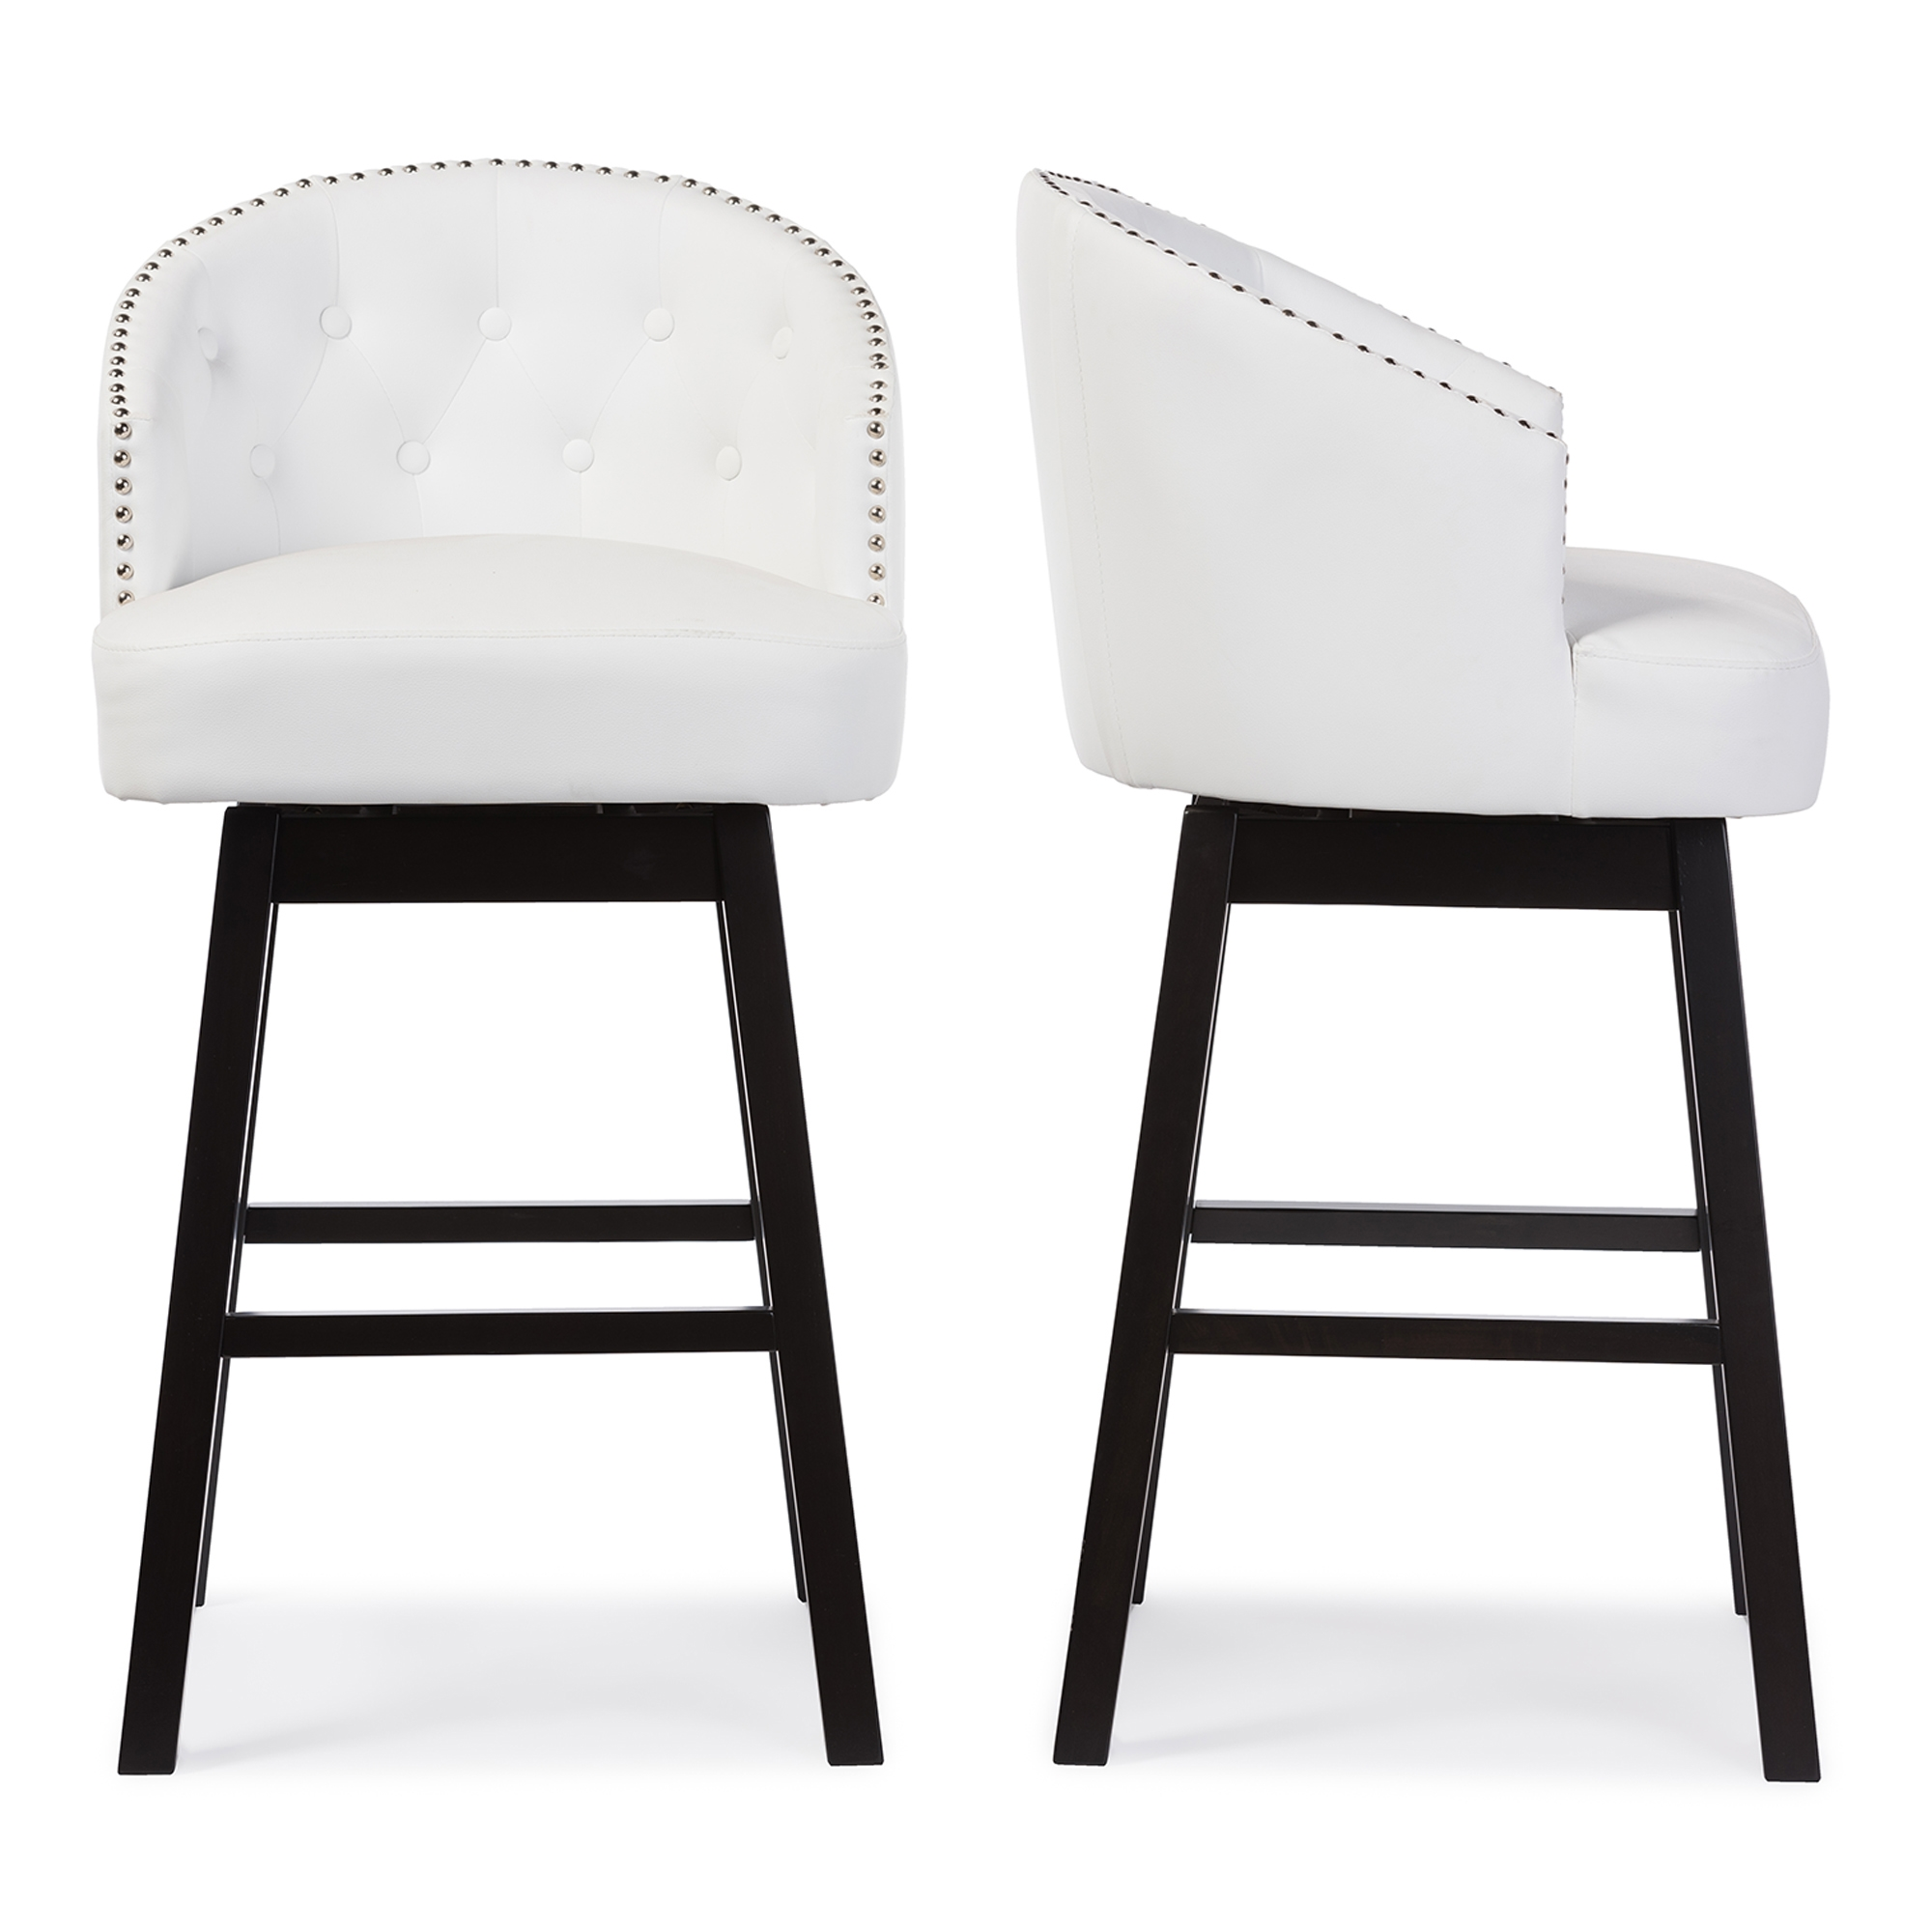 Baxton Studio Avril Modern and Contemporary White Faux Leather Tufted Swivel Barstool with Nail heads Trim  sc 1 st  Baxton Studio Outlet & Baxton Studio Avril Modern and Contemporary White Faux Leather ... islam-shia.org